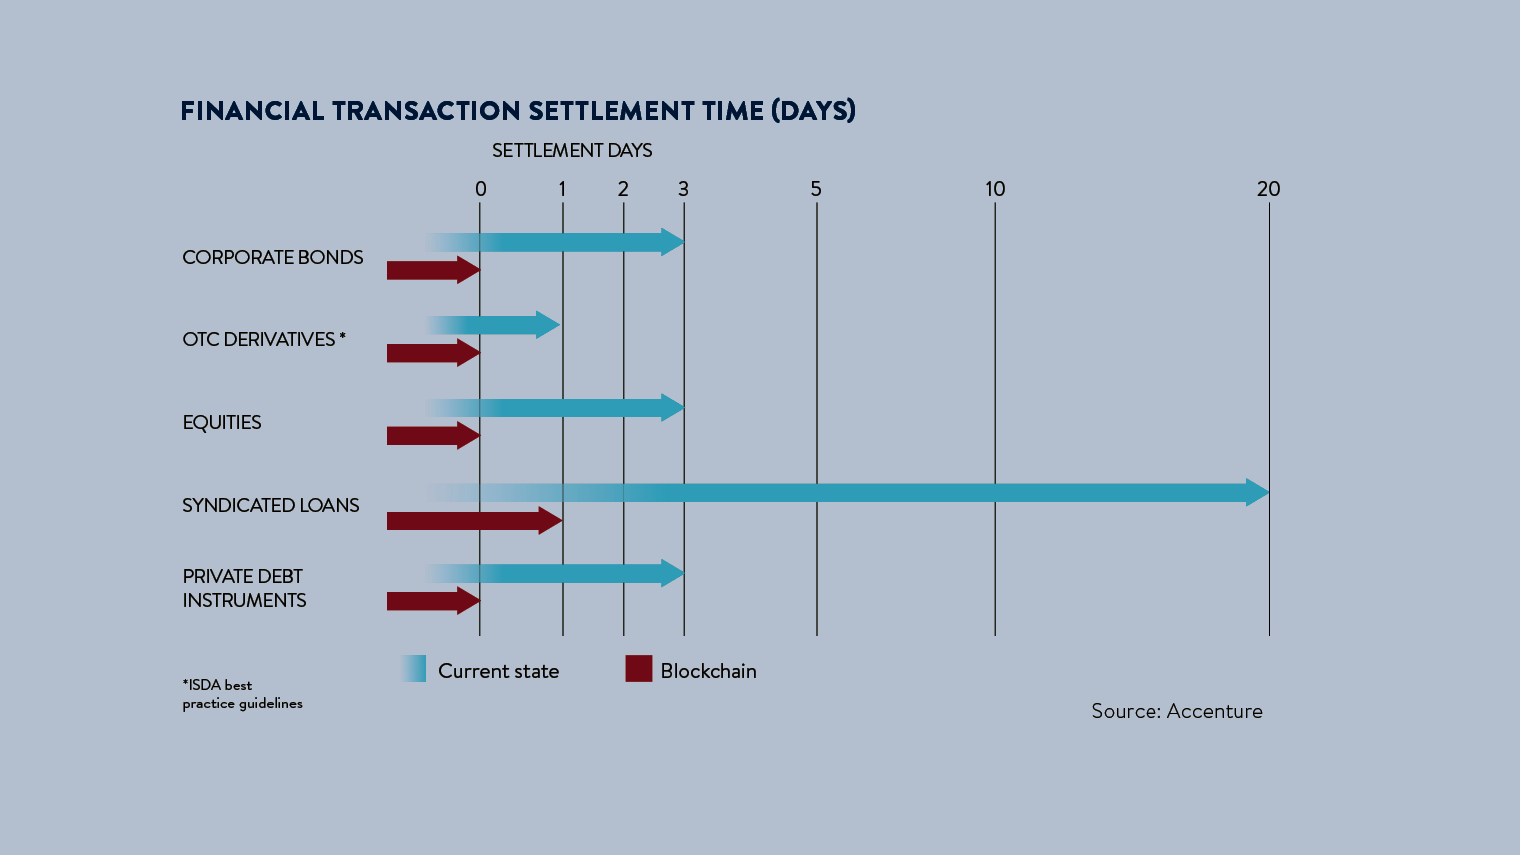 Financial transaction settlement time